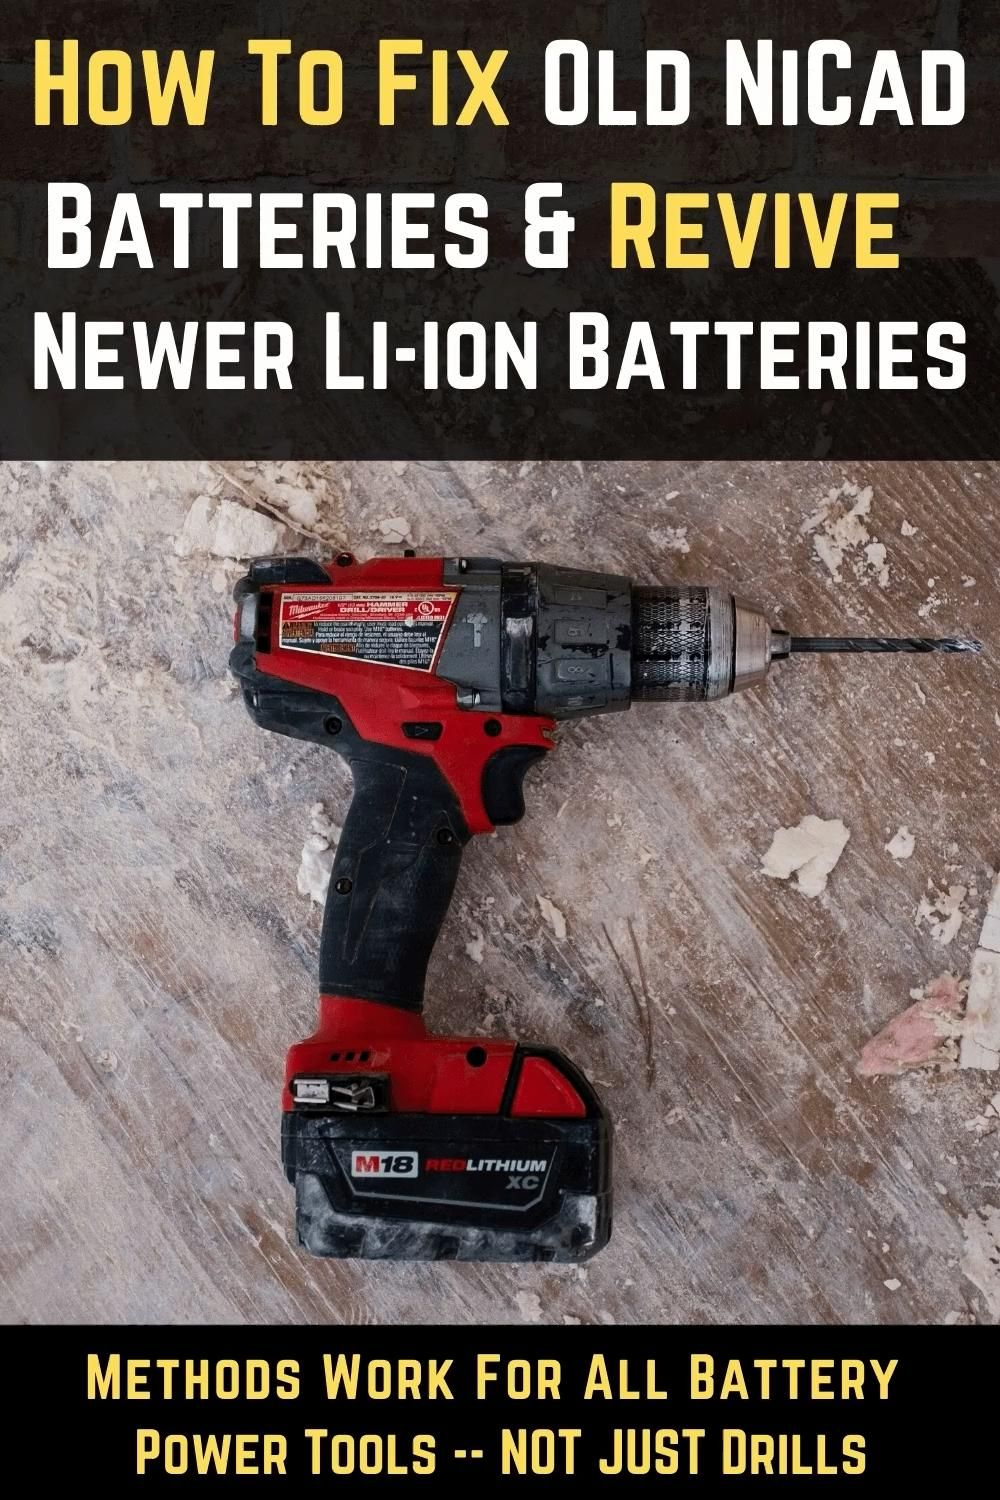 Ez Battery Reconditioning Pdf Diy Battery Reconditioning Methods At Home Cars Course Repair Video Power Tool Batteries Battery Repair Cordless Drill Batteries